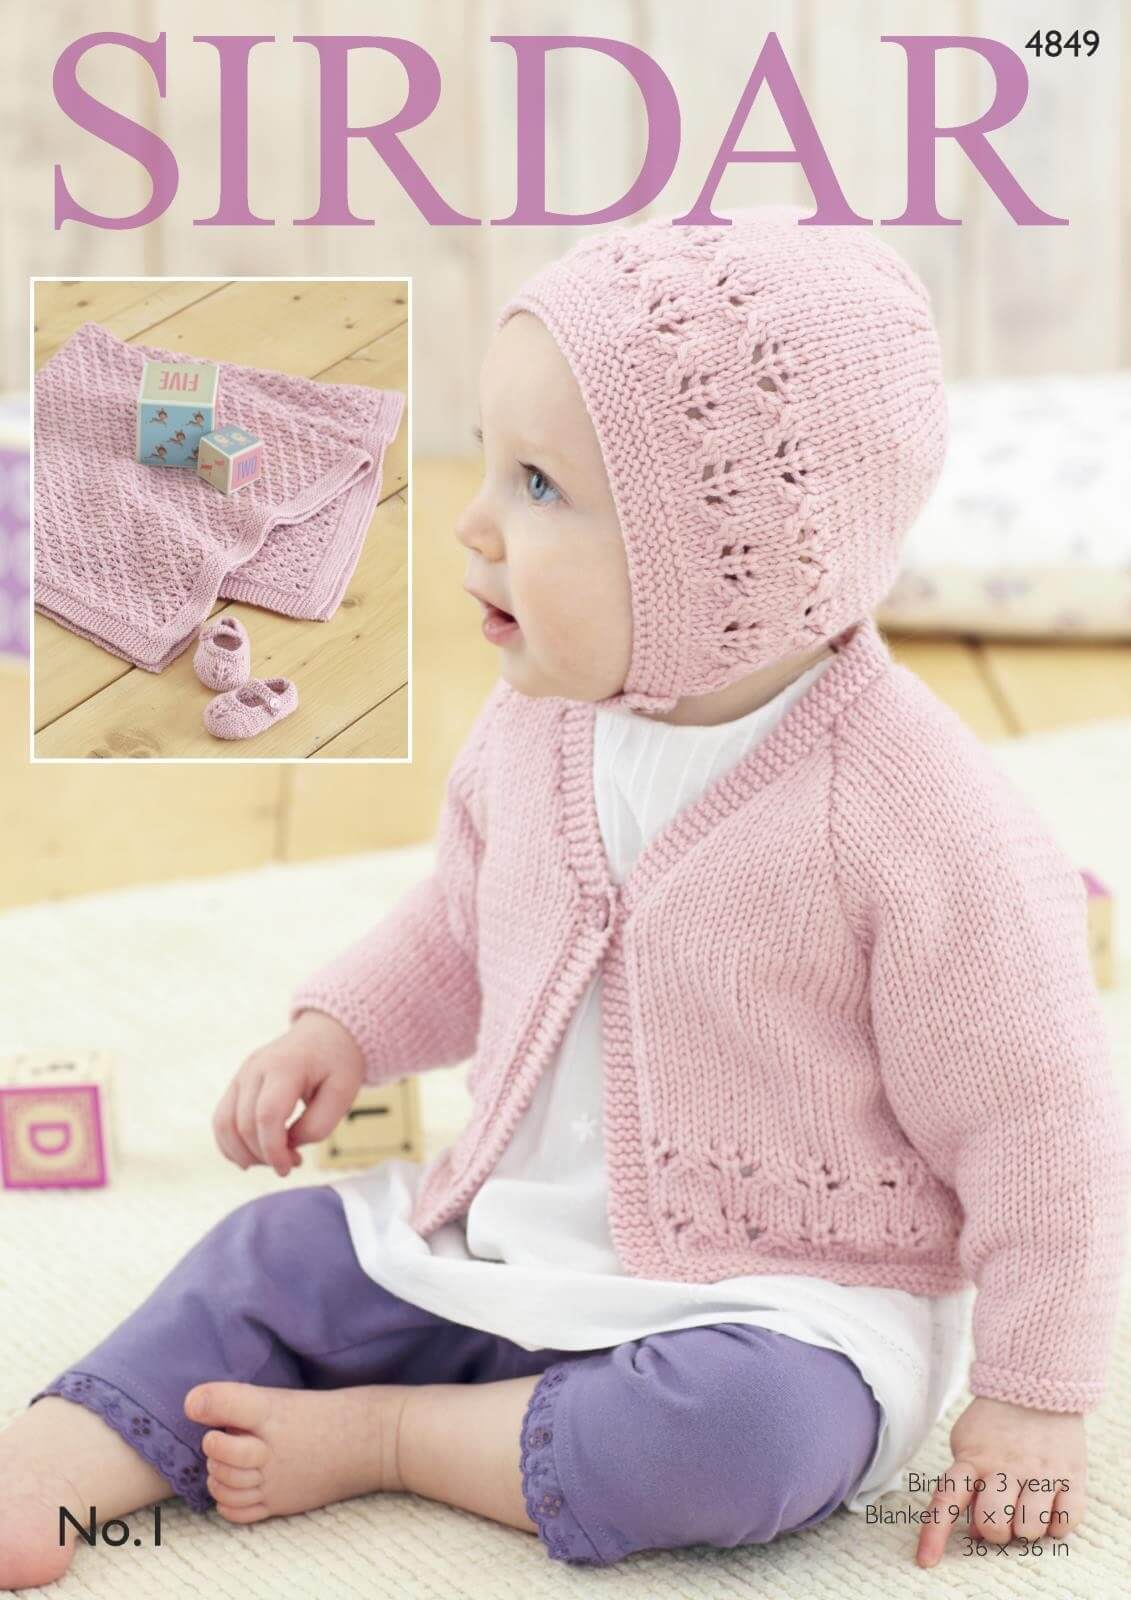 Sirdar Knitting Pattern 4849 Baby Bonnet Blanket Cardigan